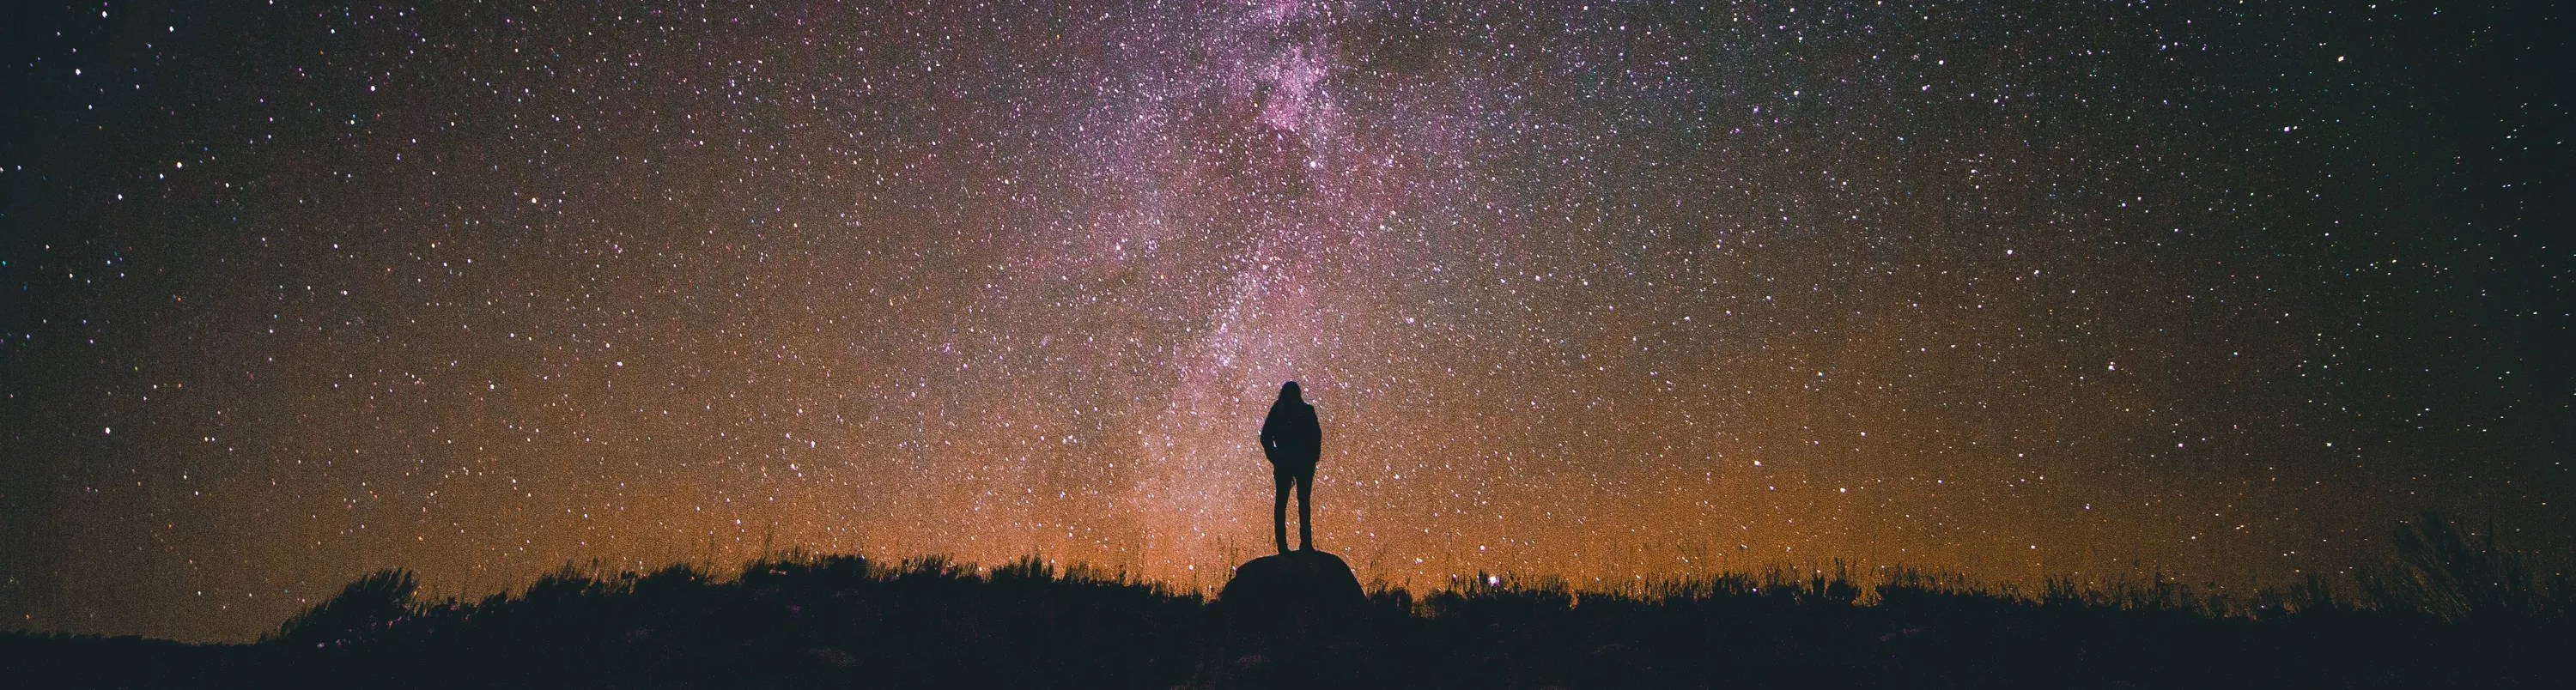 What is your carbon footprint Target? A man stands on a rock looking at a star filled  sky.